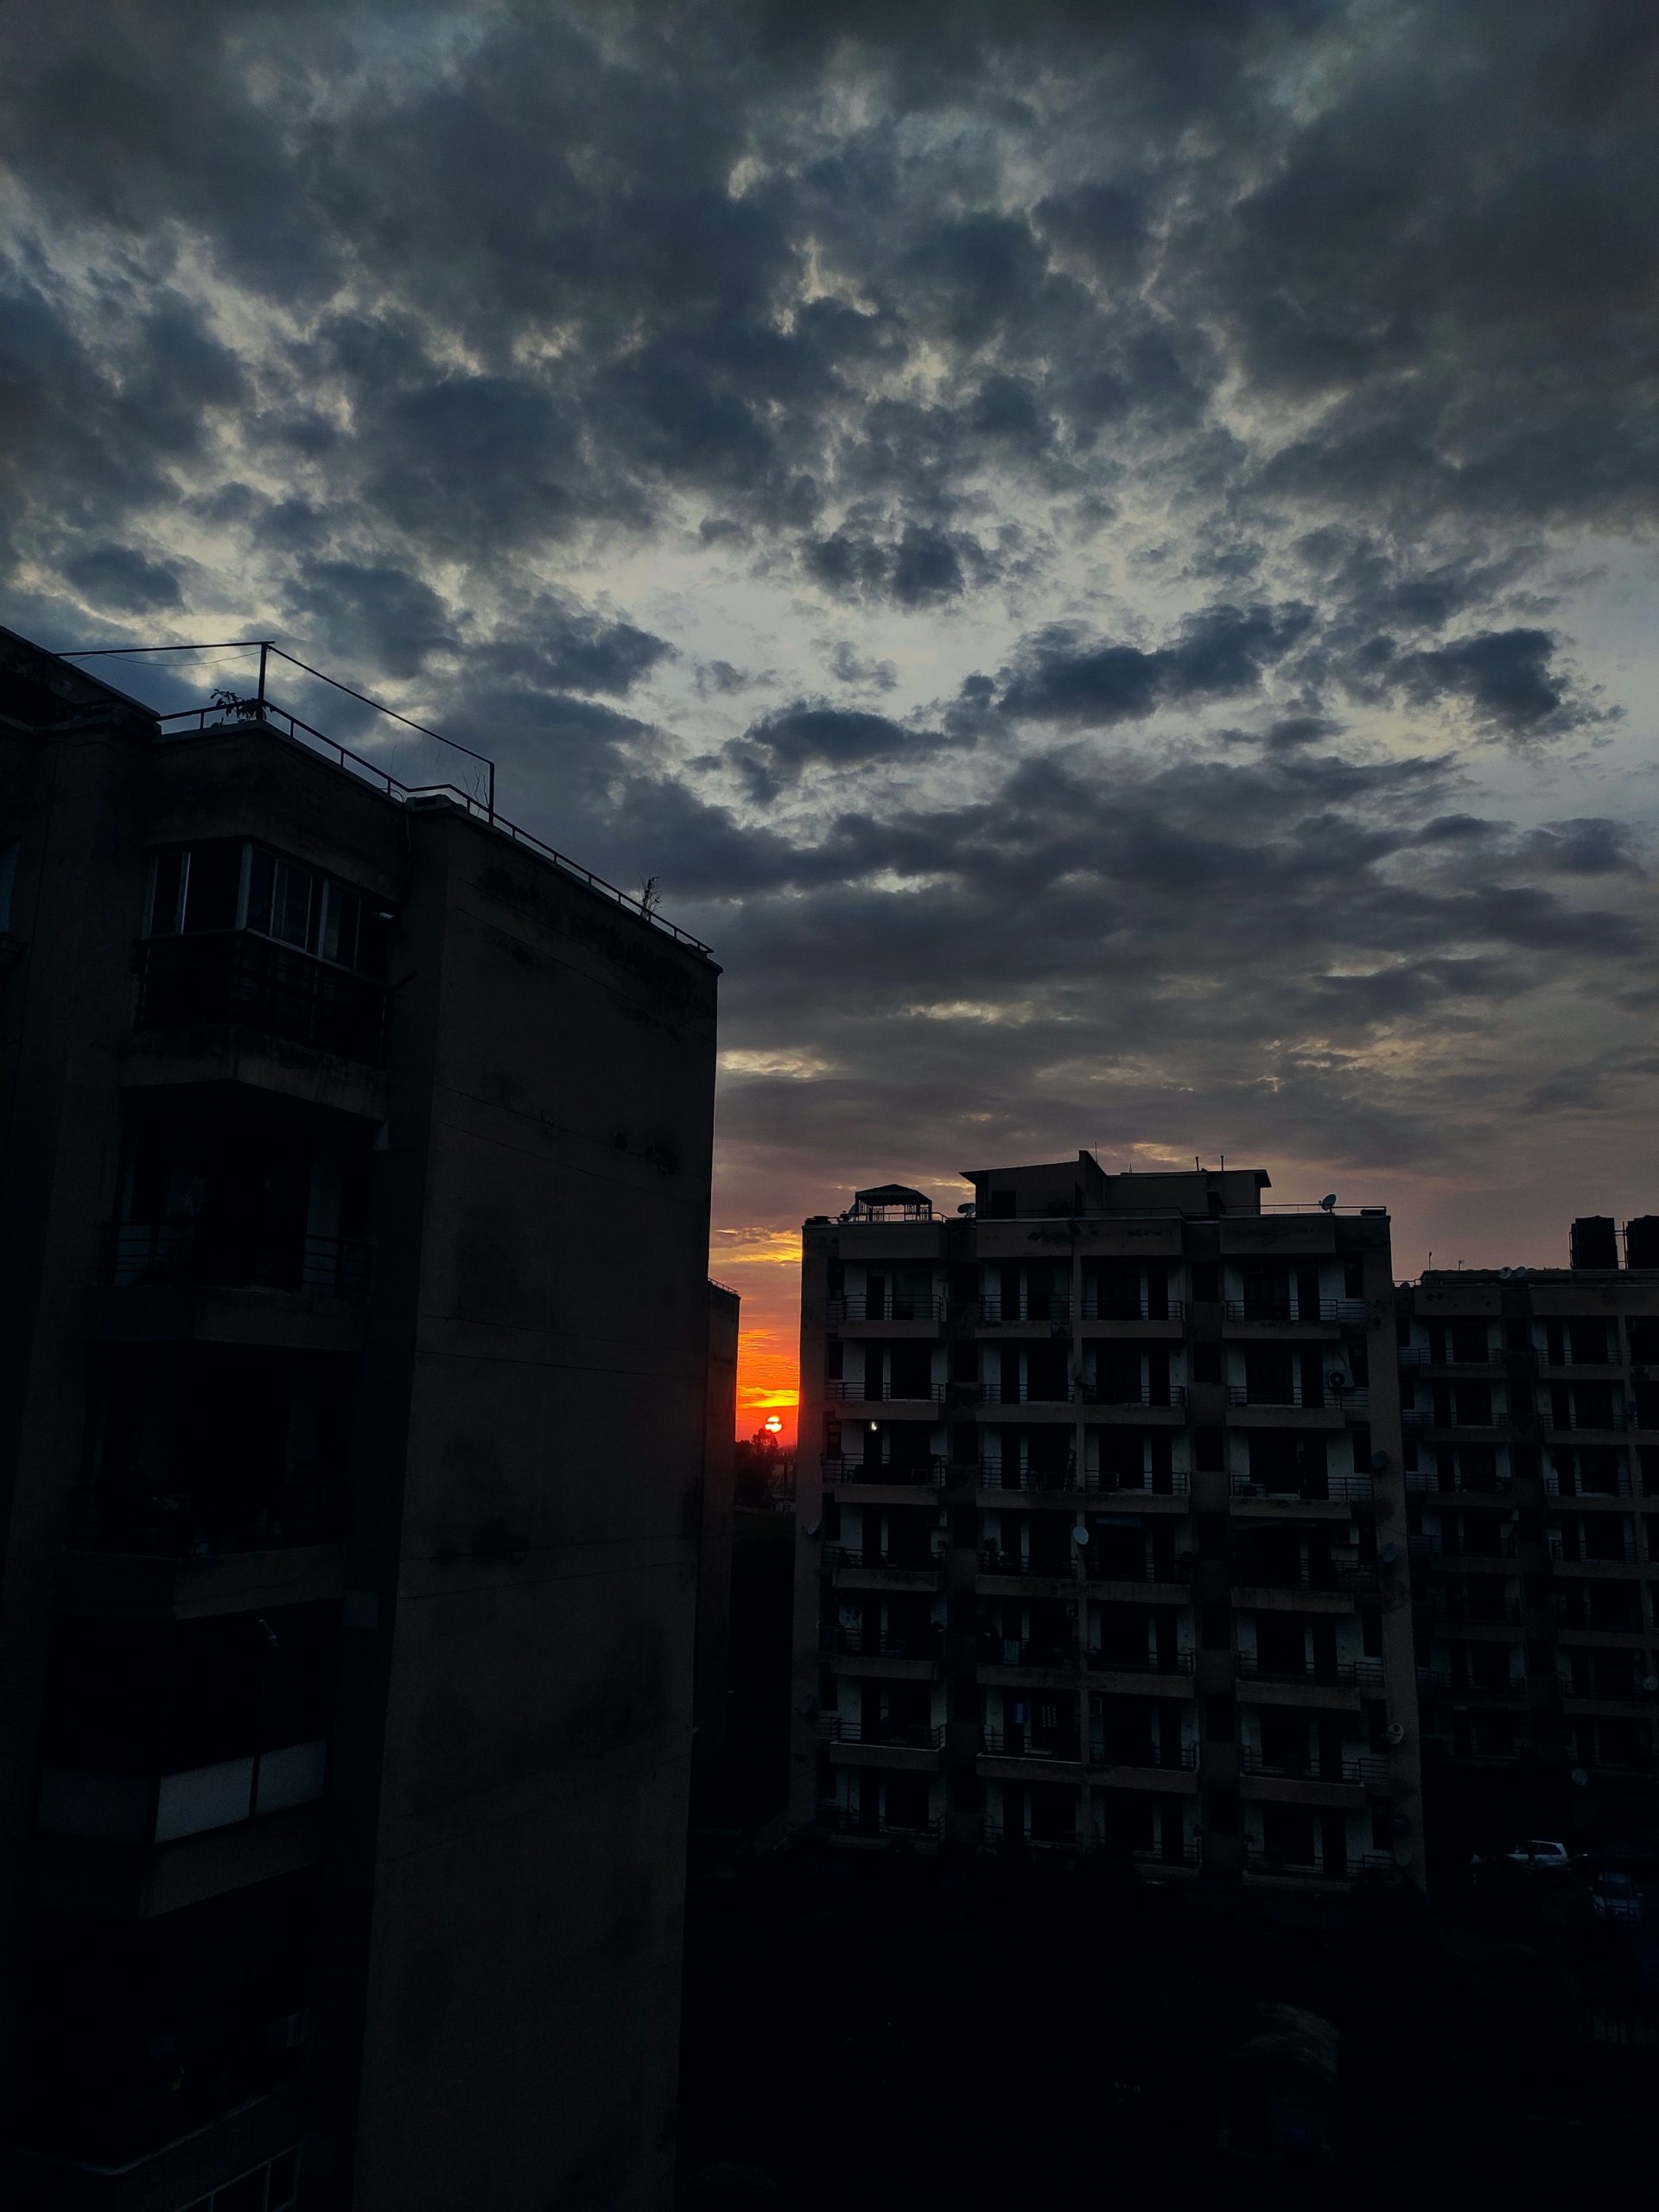 Tower Block and a Sunset Scenery